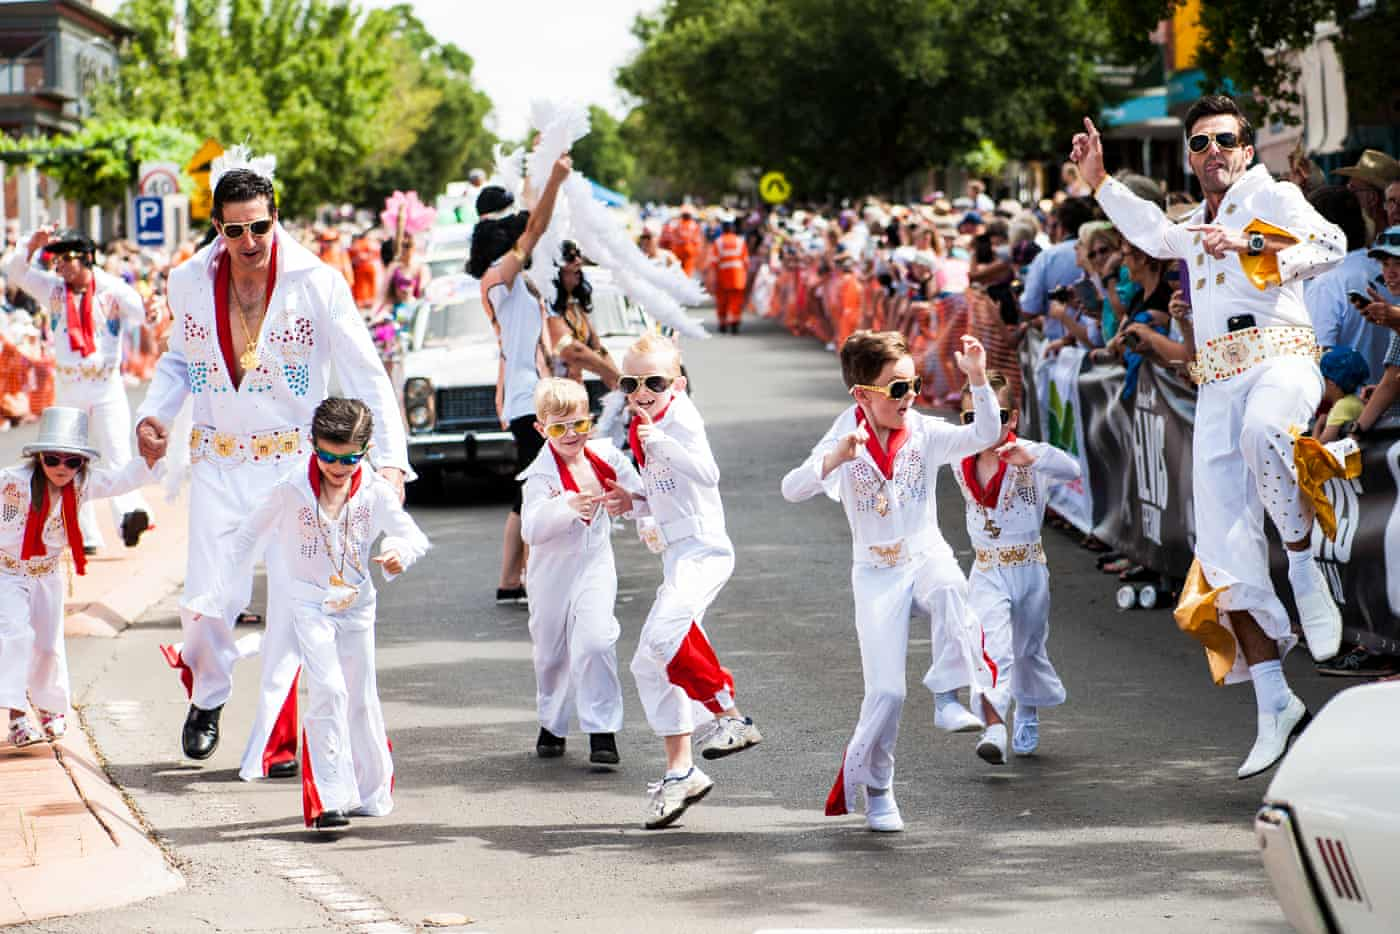 I thought the Elvis fan festival would be funny. It cracked me open and changed my life